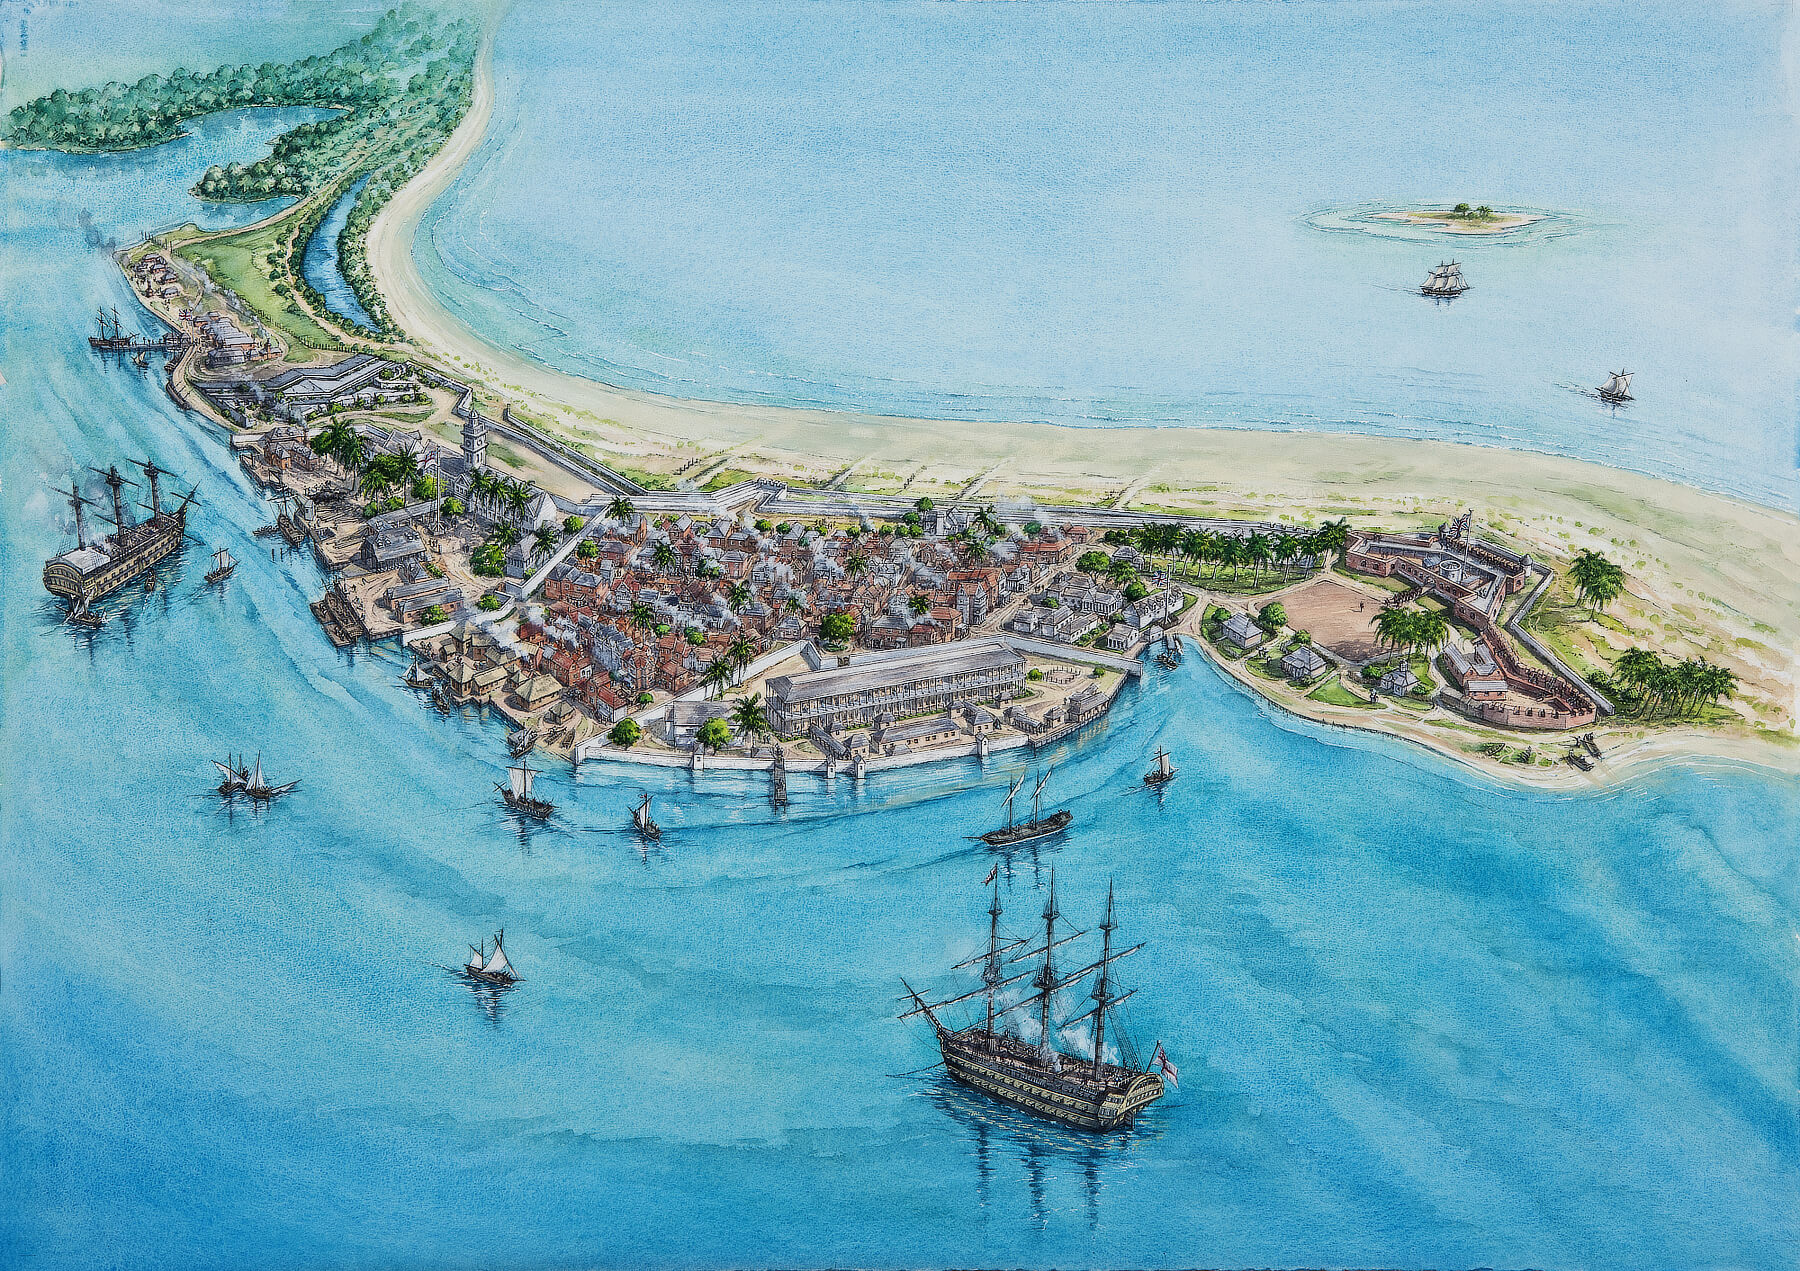 Port Royal circa 1840 after rebuilding from the Earthquake